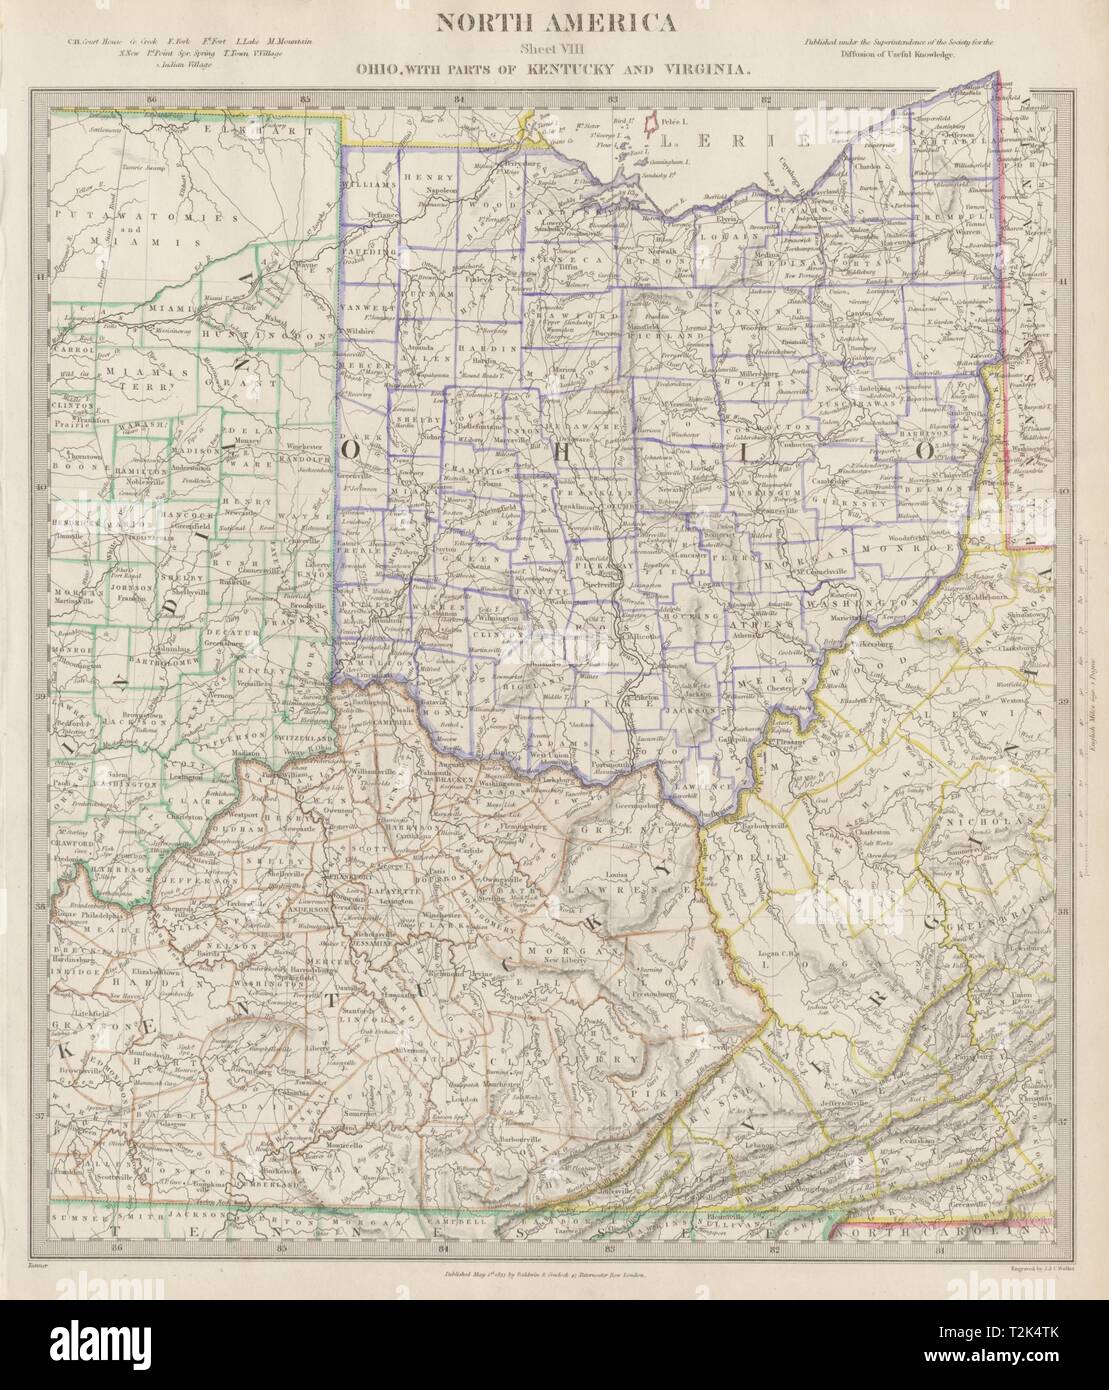 Indiana Statehouse Map on indiana senate map, indiana substation map, indiana's first map, indiana house map, indiana capitol map, crown hill cemetery map, boston statehouse map, indiana columbus map, indianapolis zoo map, indiana lighthouse map, indiana state map,